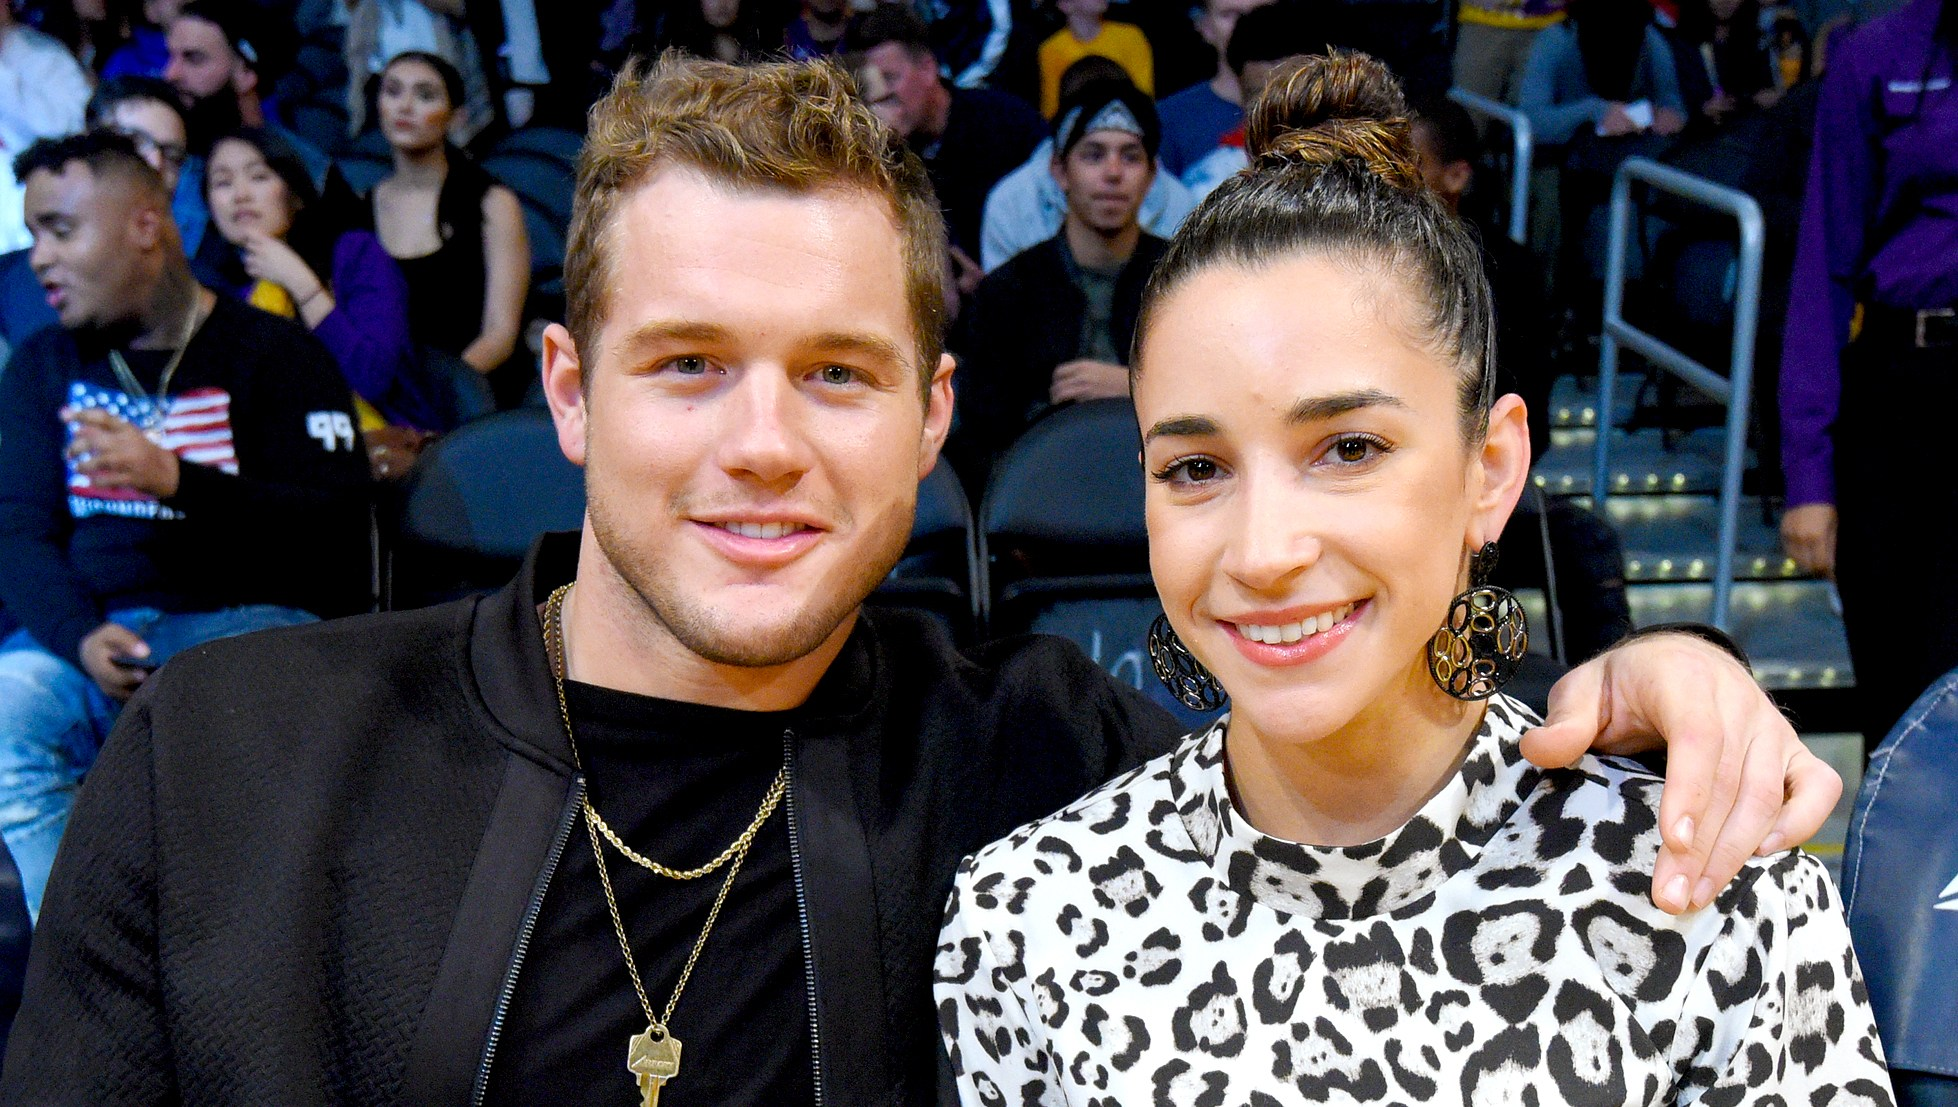 Colton-Underwood-Aly-Raisman